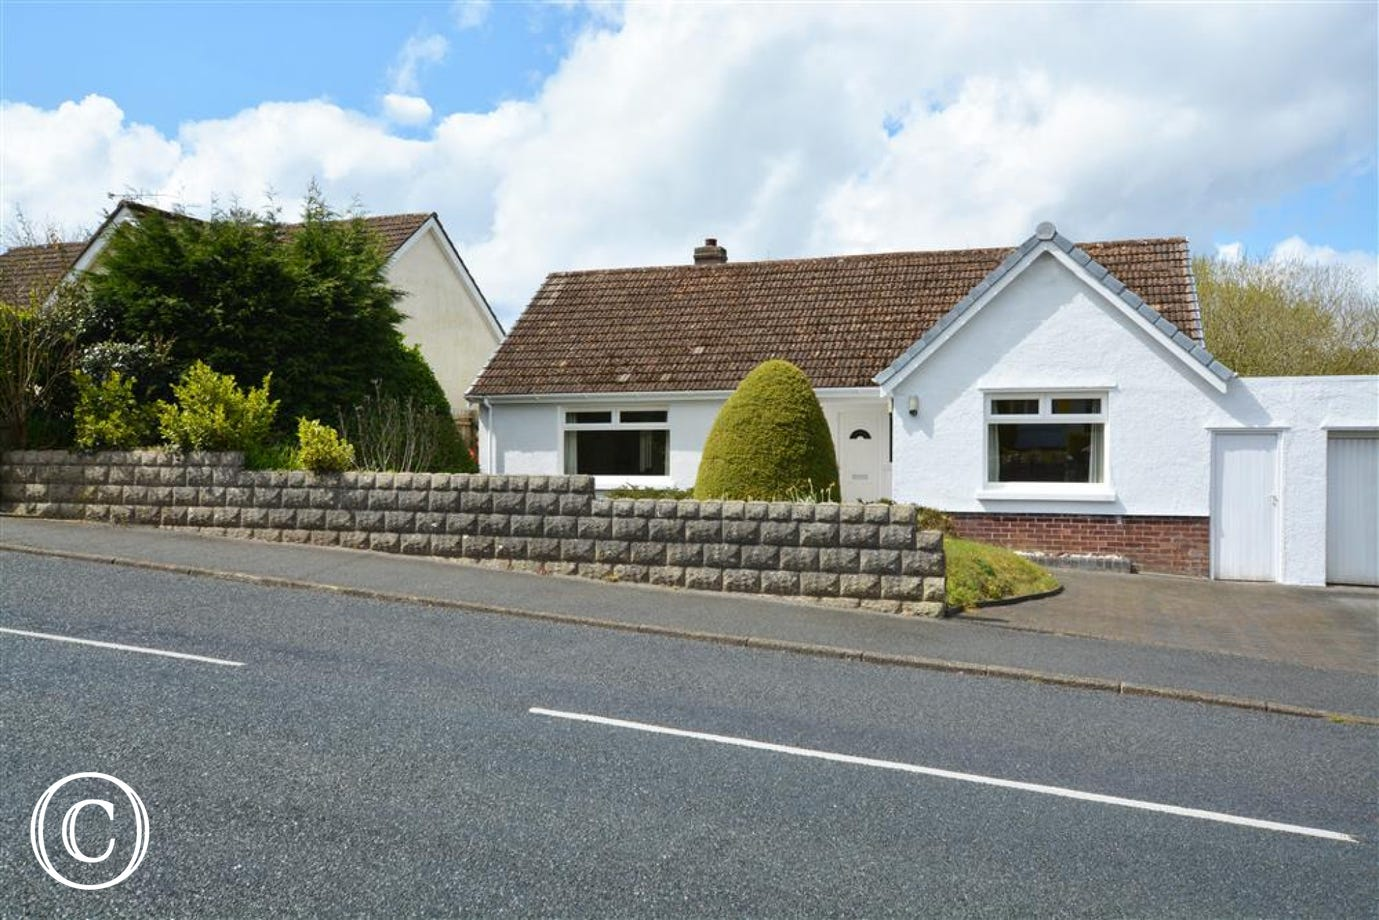 Ocean Point is a lovely 3 bedroom bungalow in Saundersfoot